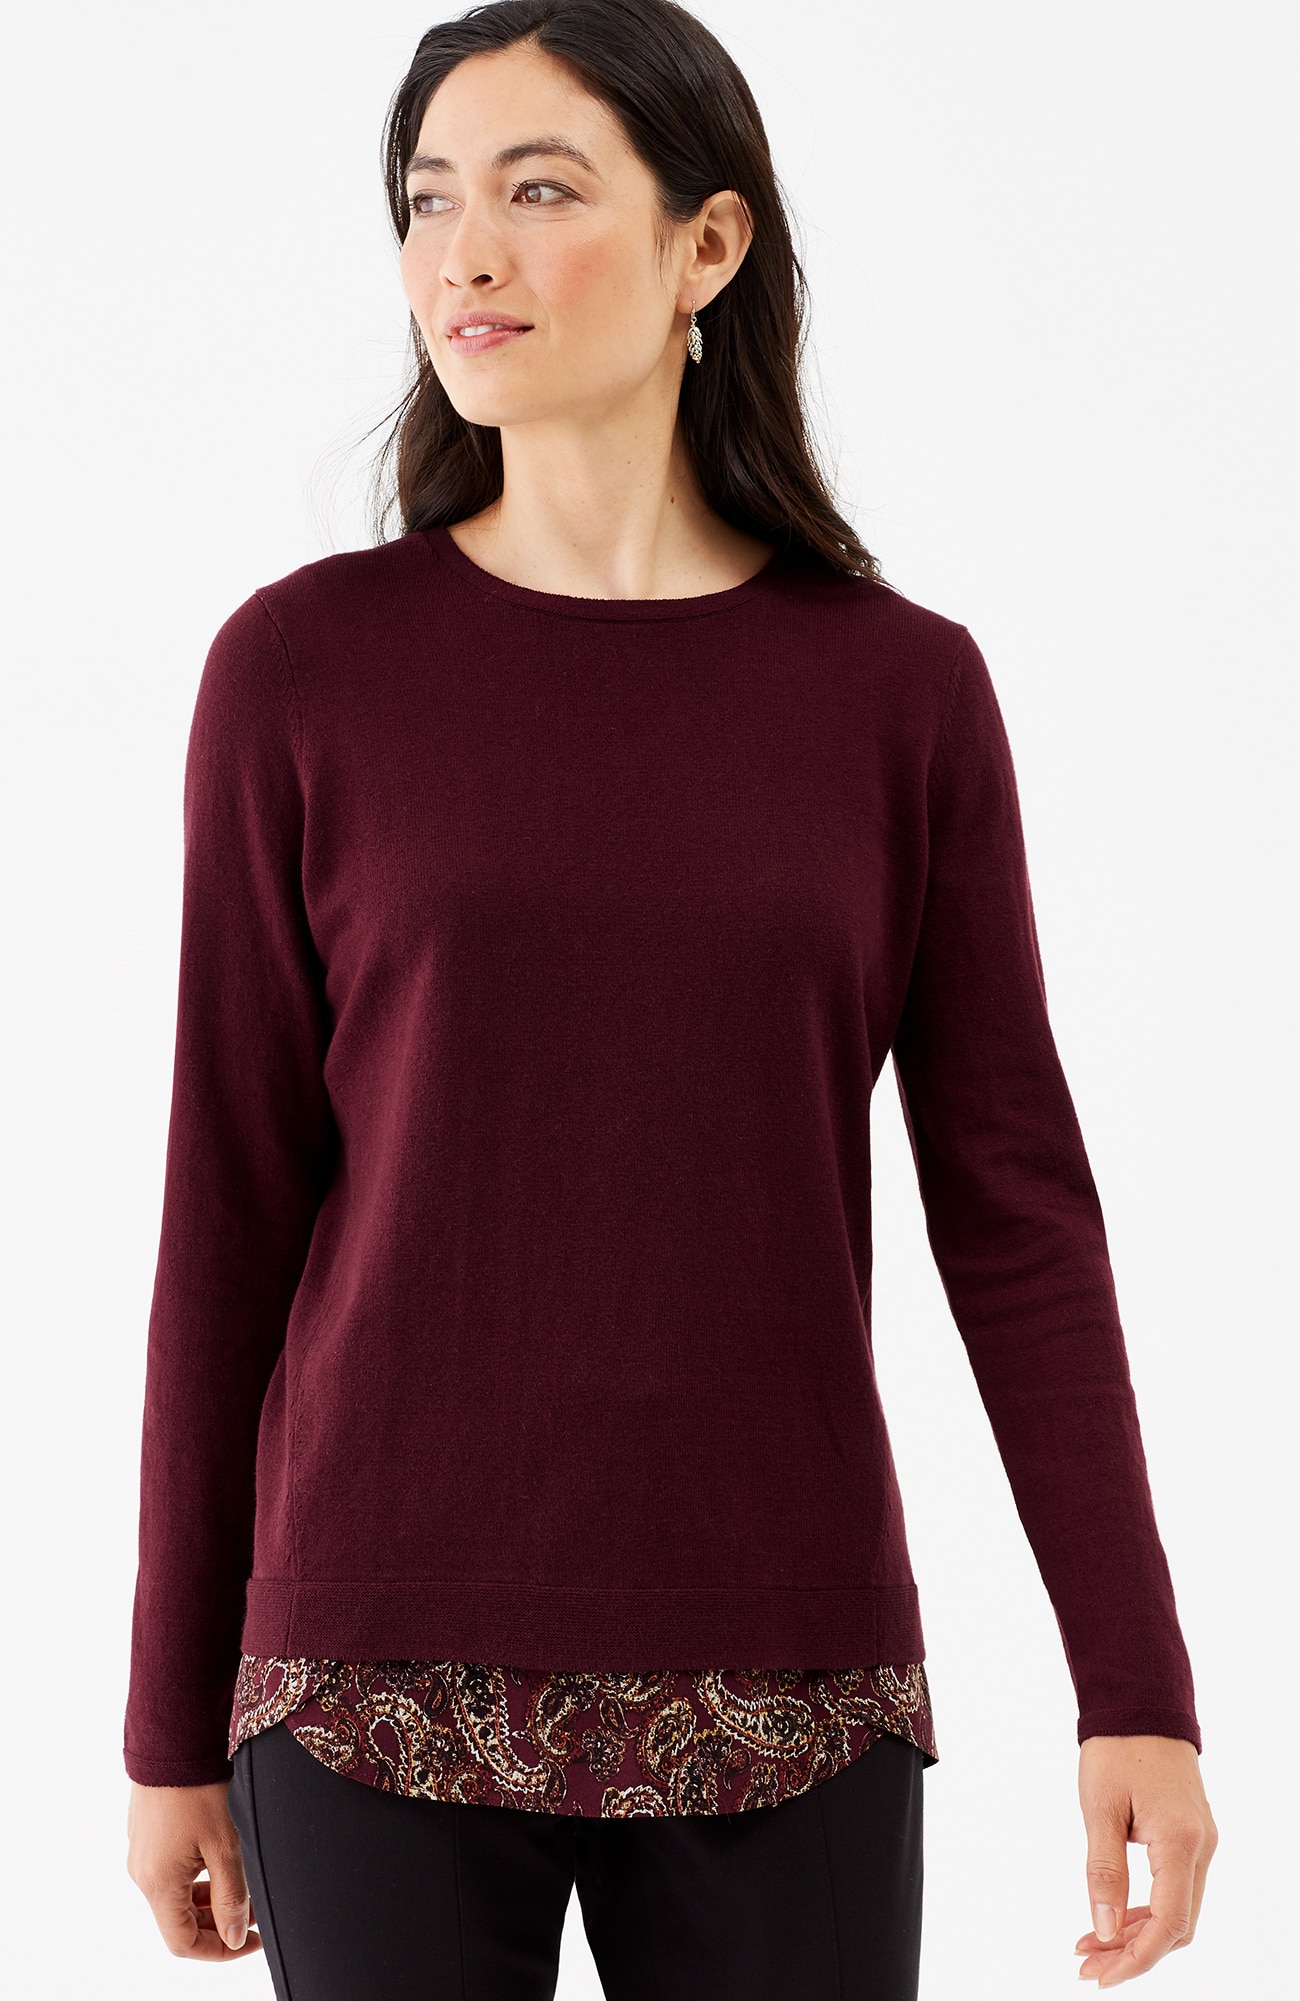 mixed-media forward-seam pullover